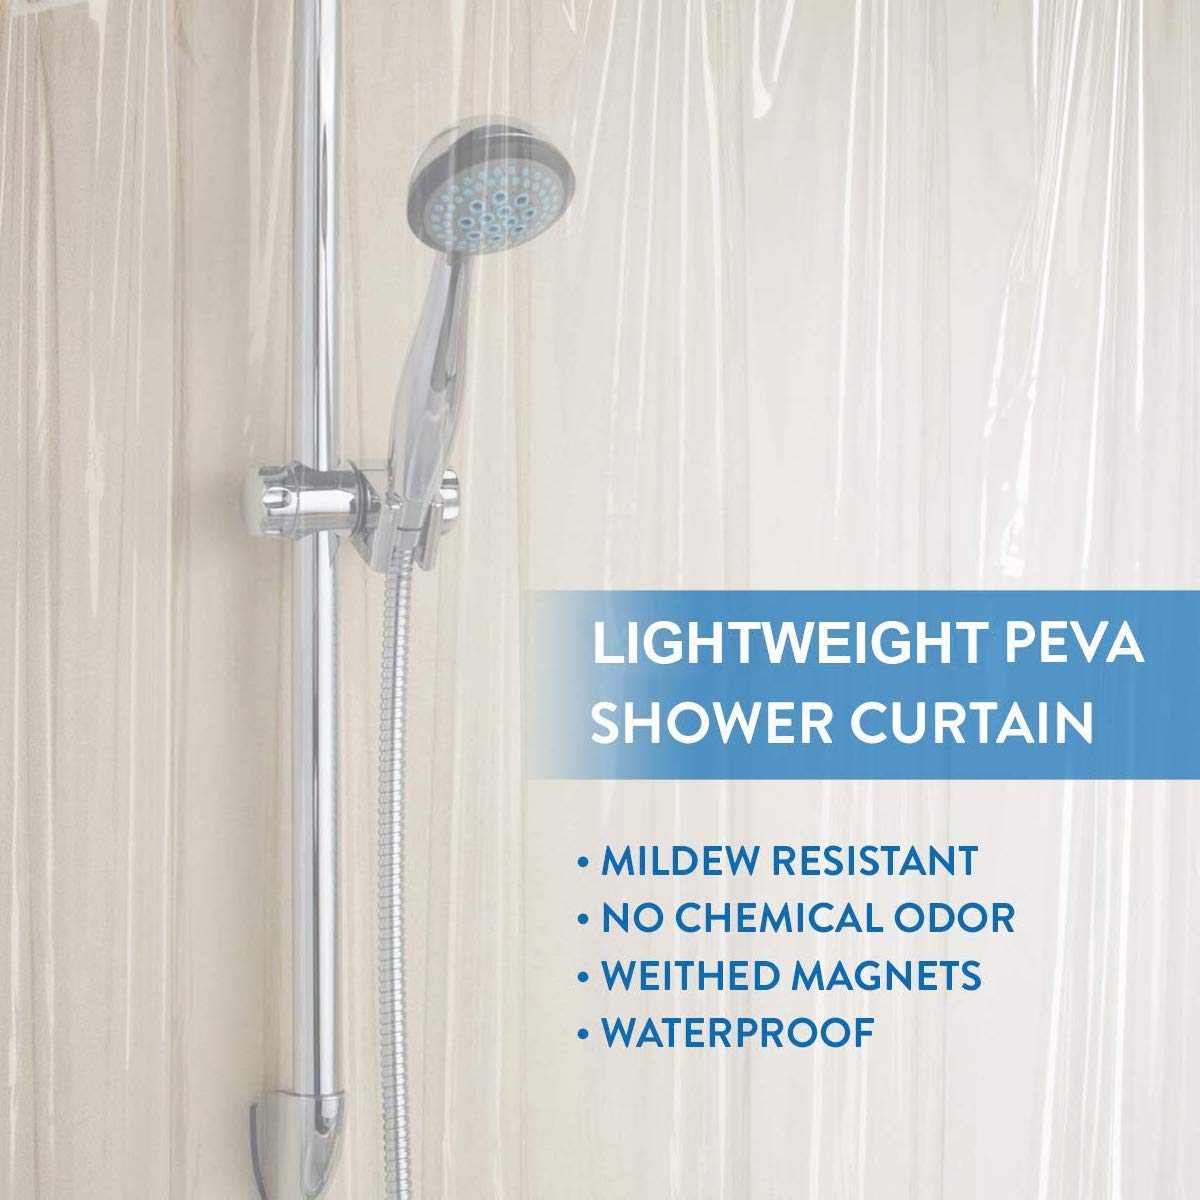 Downluxe Shower Curtain Liner Clear - Peva 3G Waterproof für Bathroom, 72X72 Inches, 1Pc